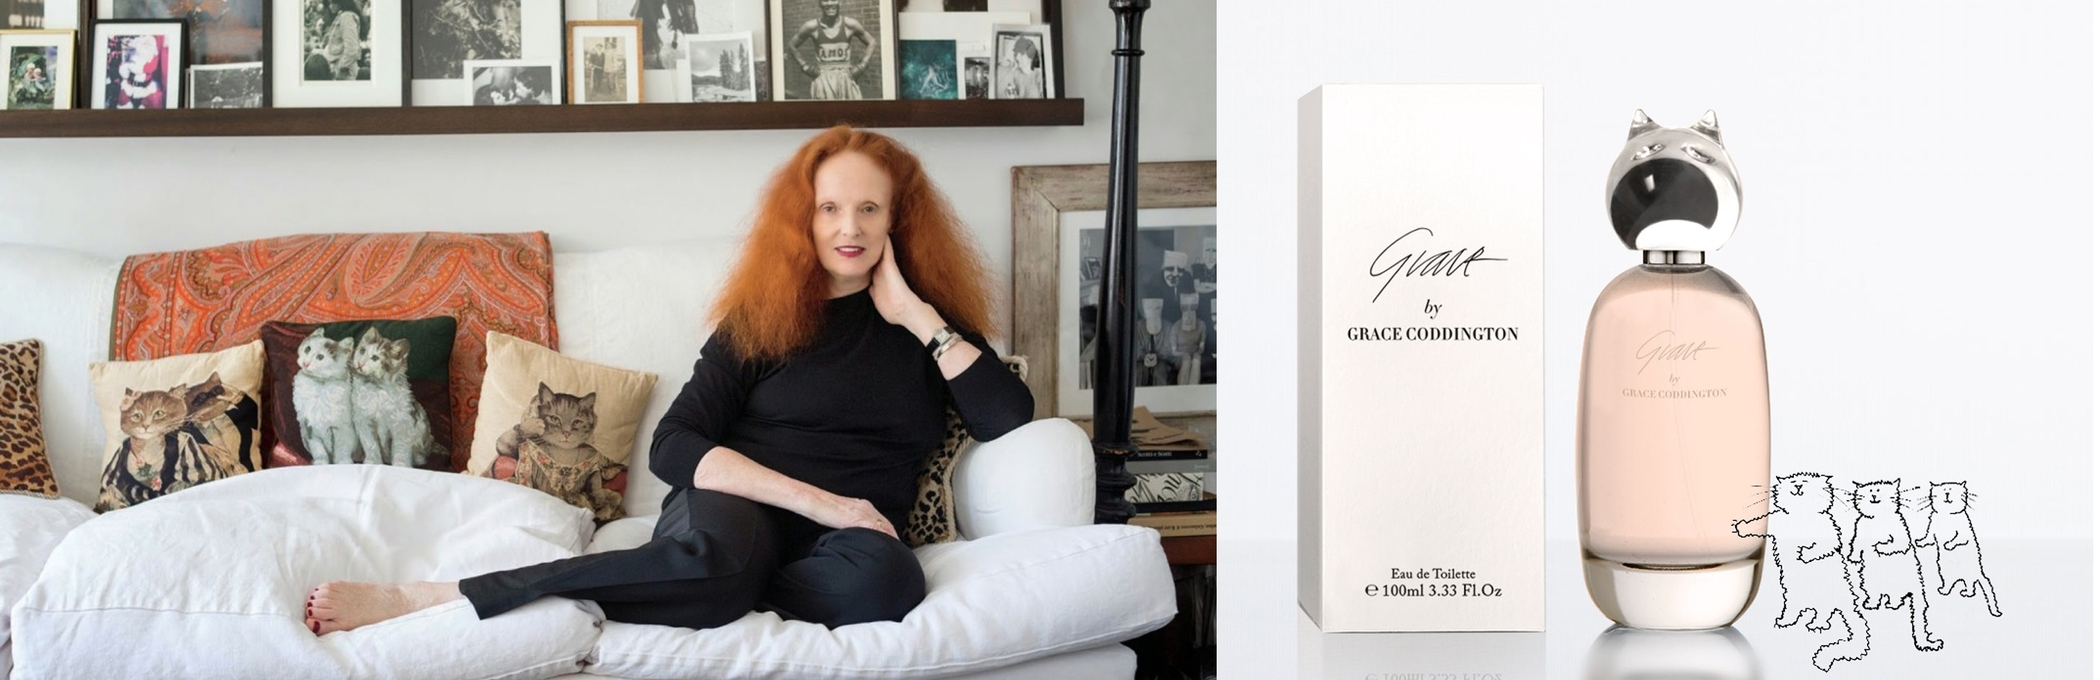 Grace Coddington at home (left) and her new fragrance (right)